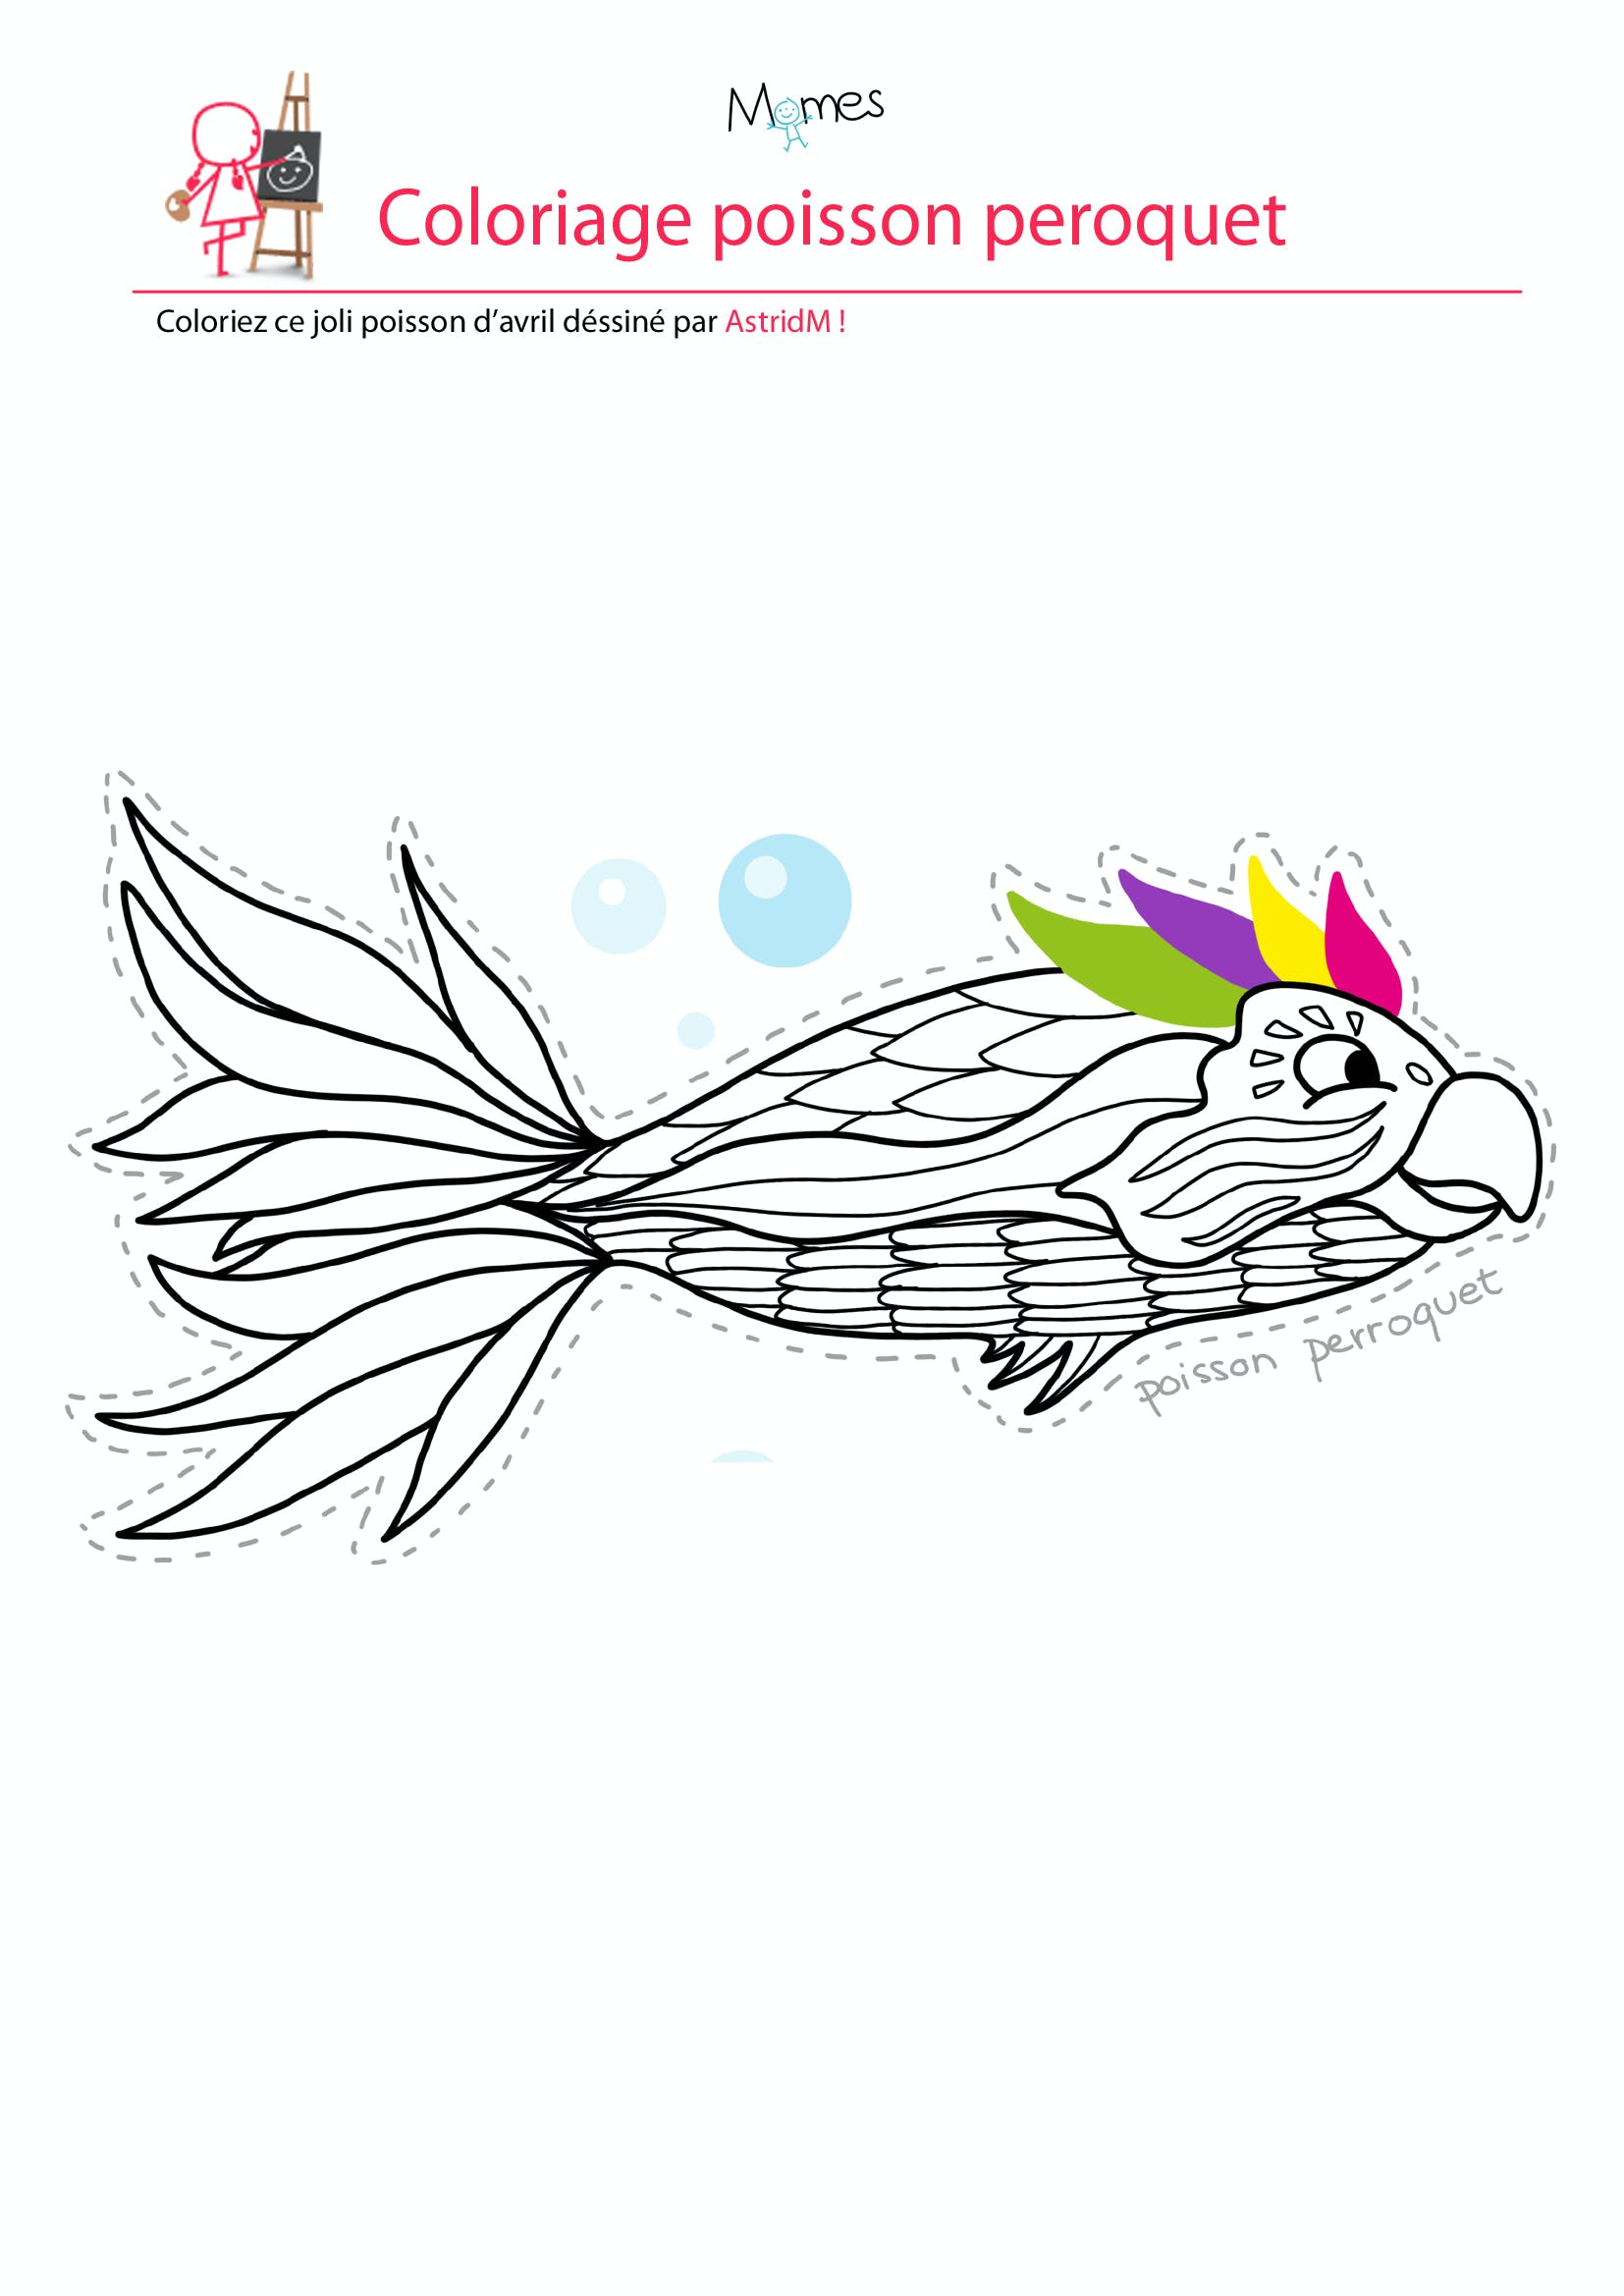 Coloriage poisson d 39 avril le poisson perroquet - Dessin de perroquet en couleur ...